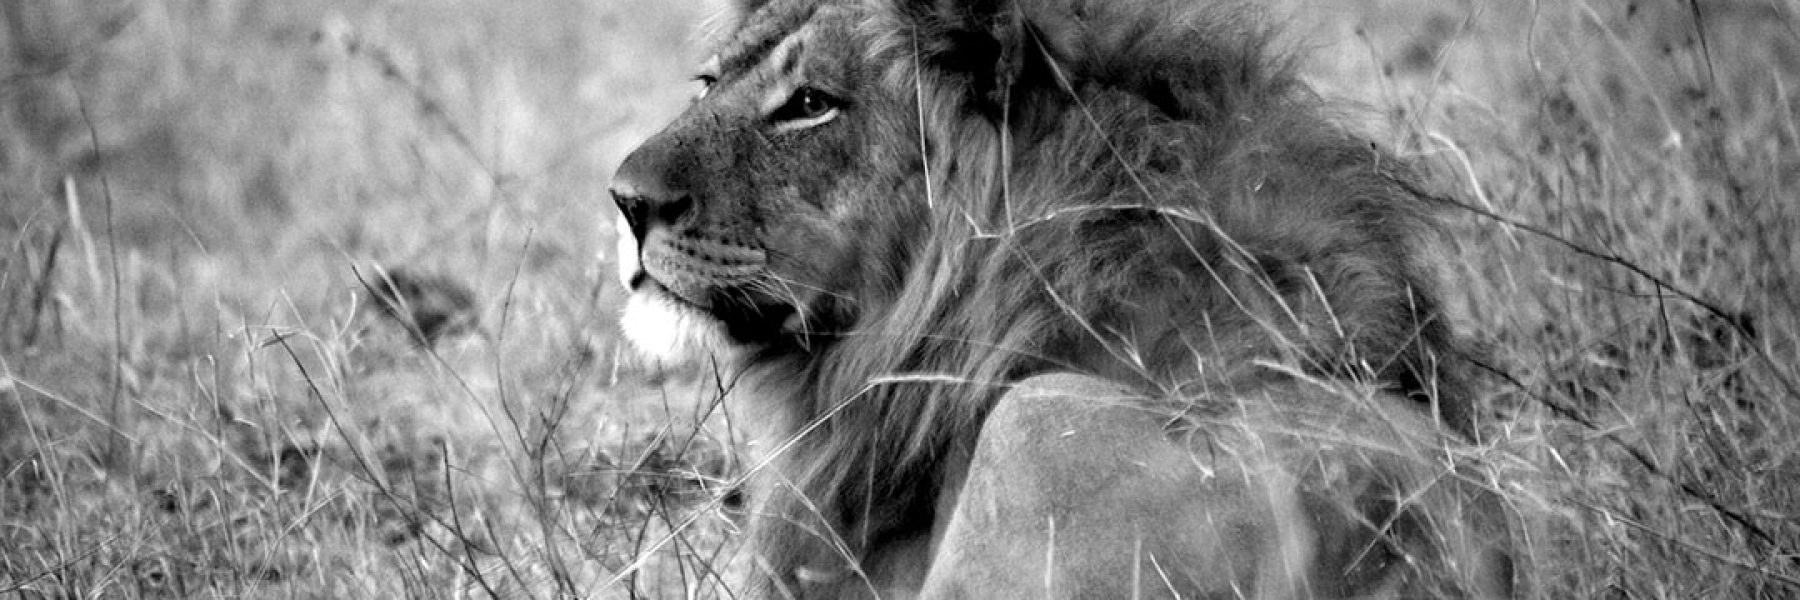 b&w lion male in the grass_1080